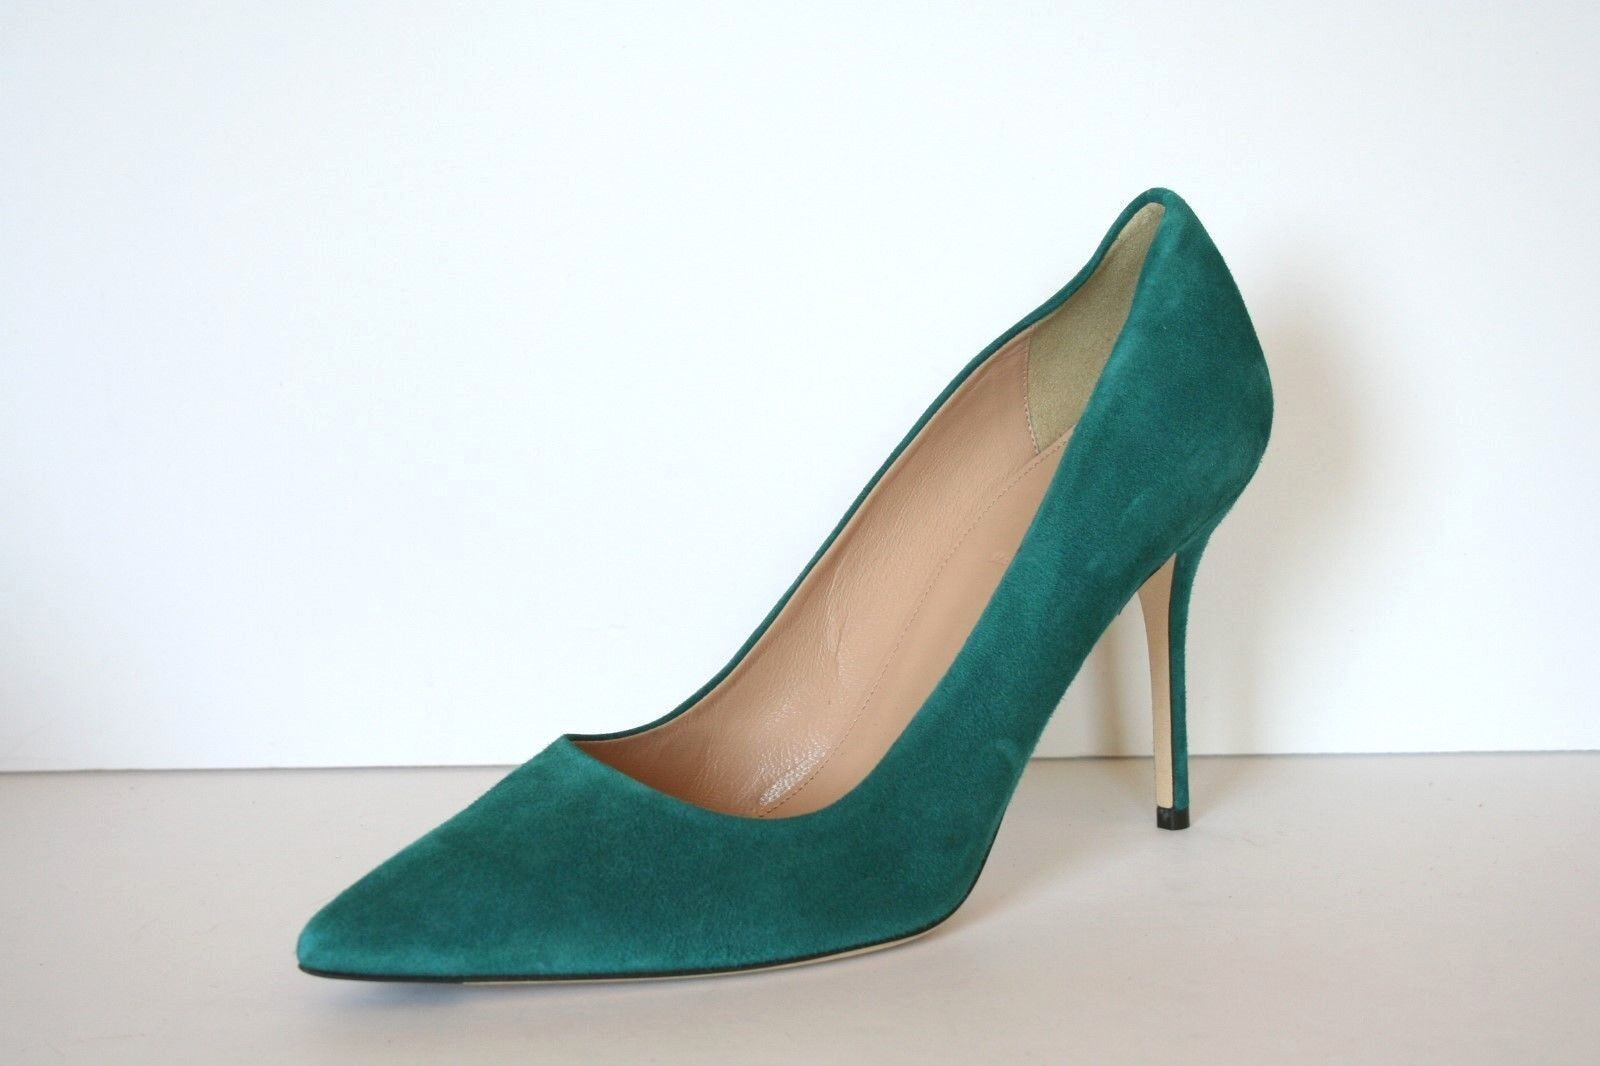 JCrew Elsie Suede Pumps 9 High-Heels Vivid Jade Green E4969  245